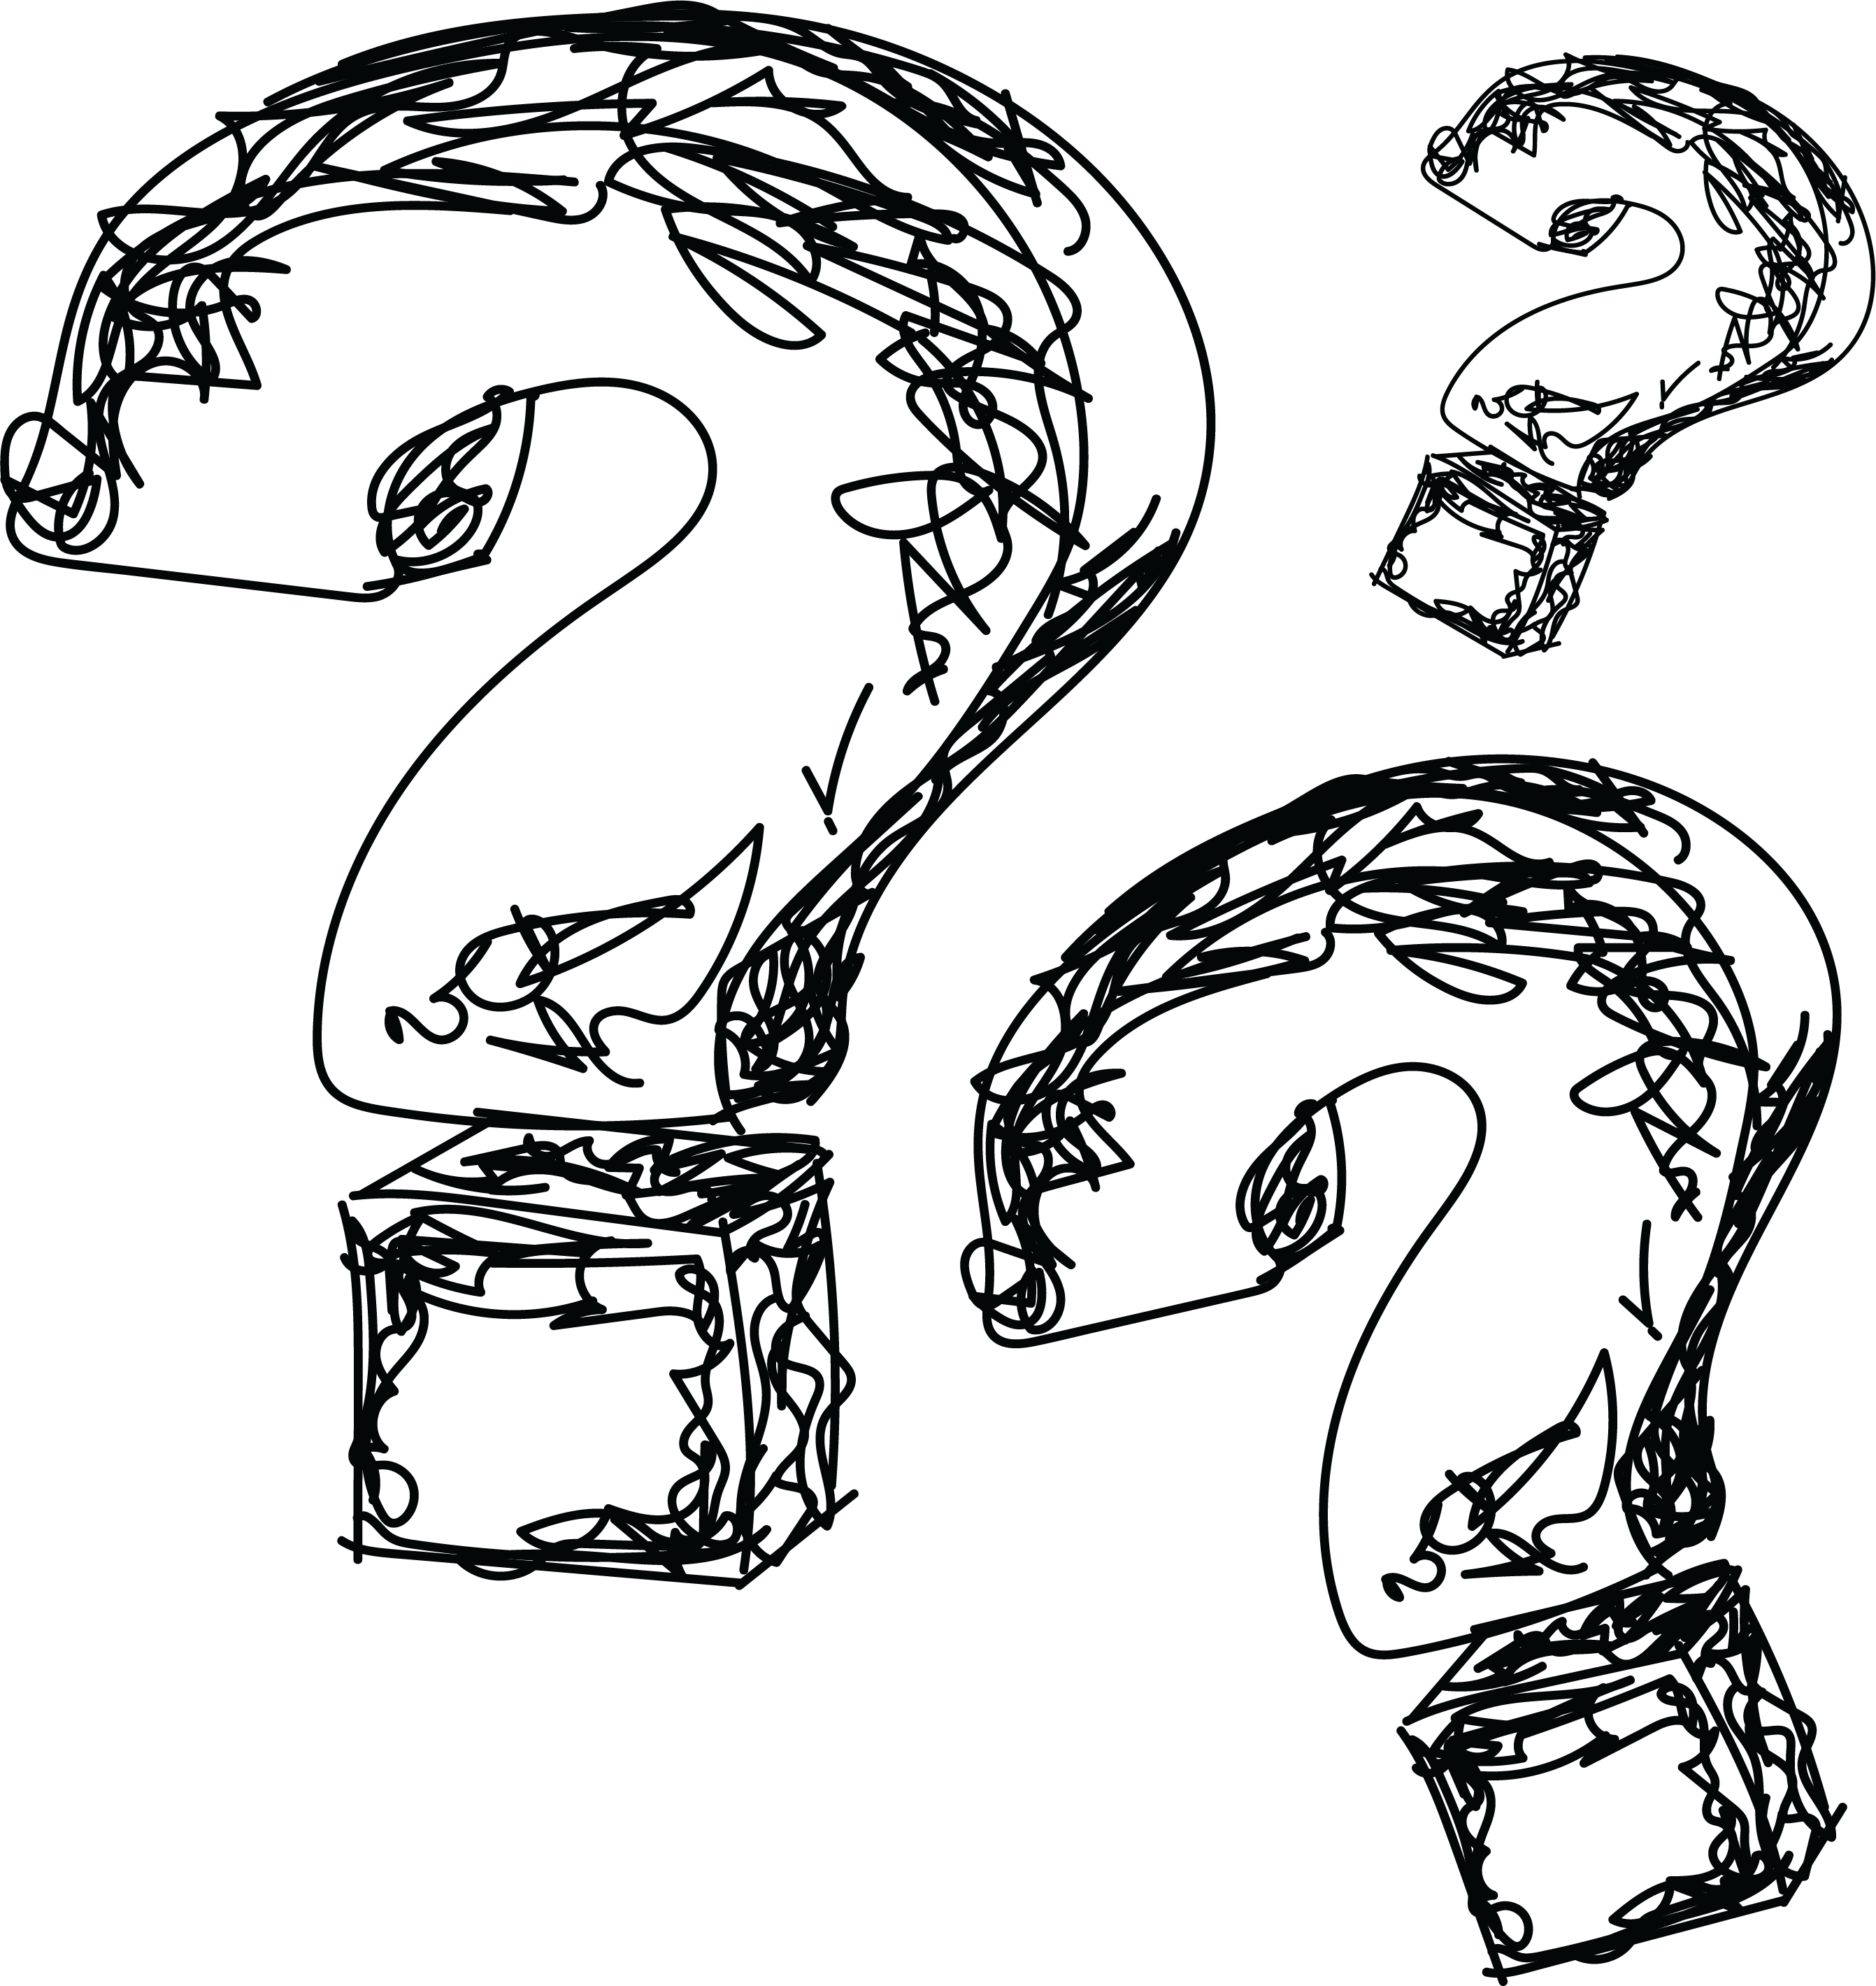 sketches of question marks